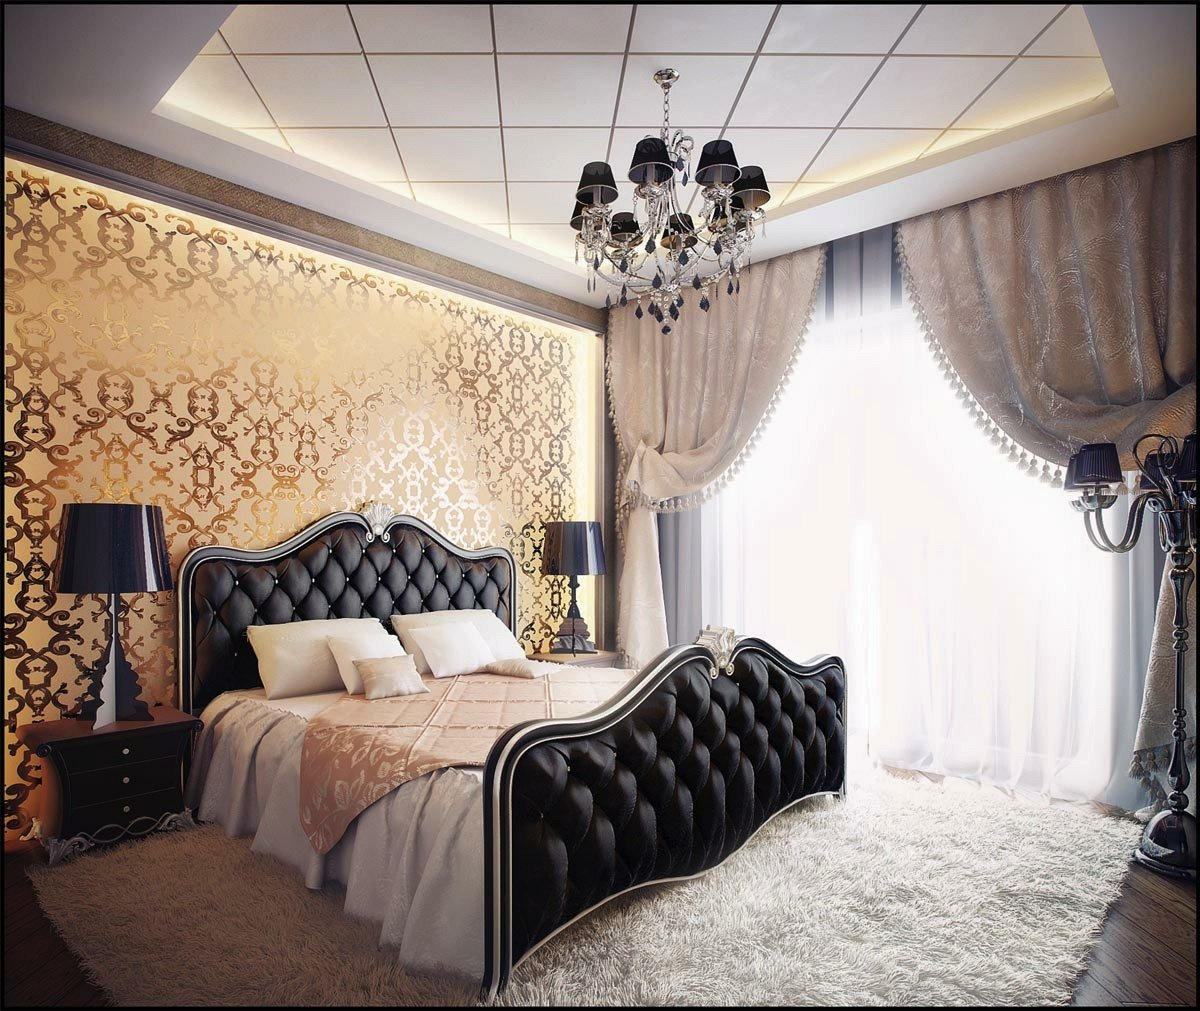 Black and Gold Bedroom Decor Unique Bedrooms with Traditional Elegance